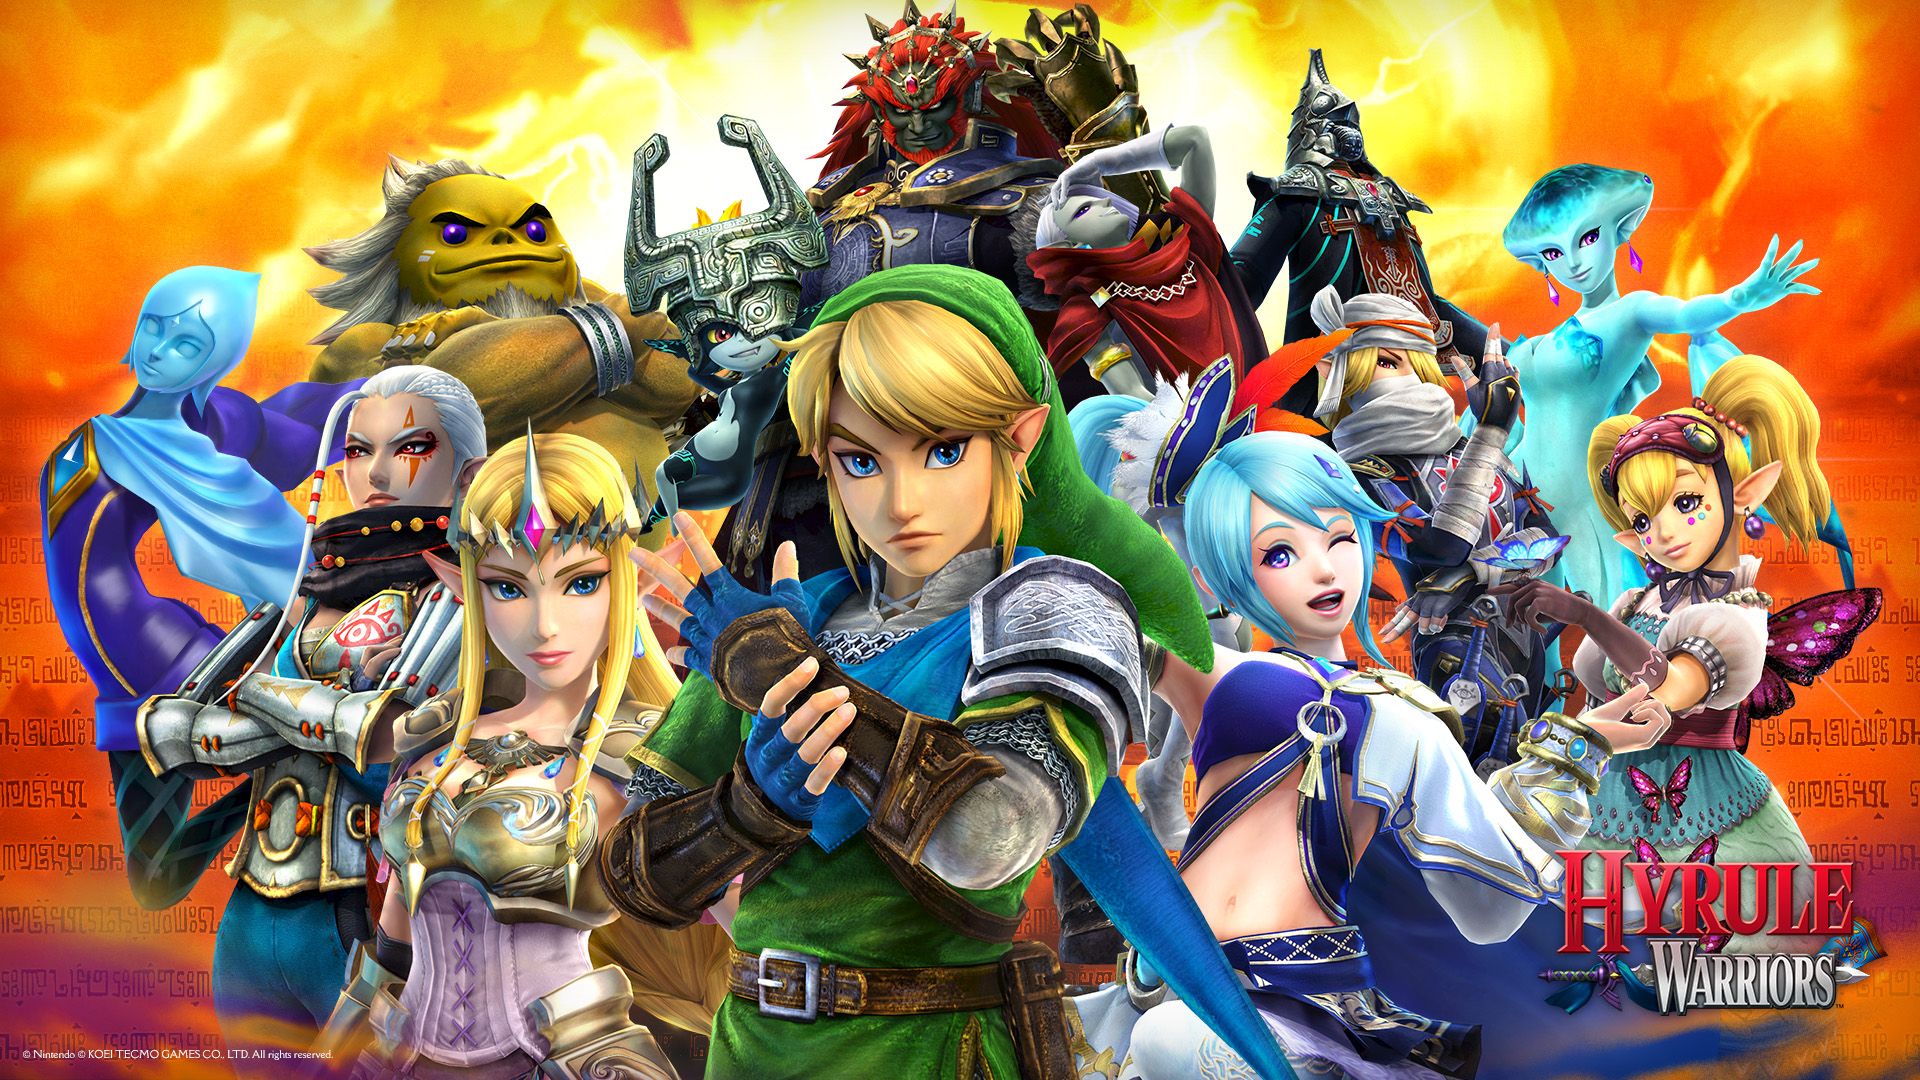 Modojo | New Hyrule Warriors Legends Screens Make Us Want It Even More